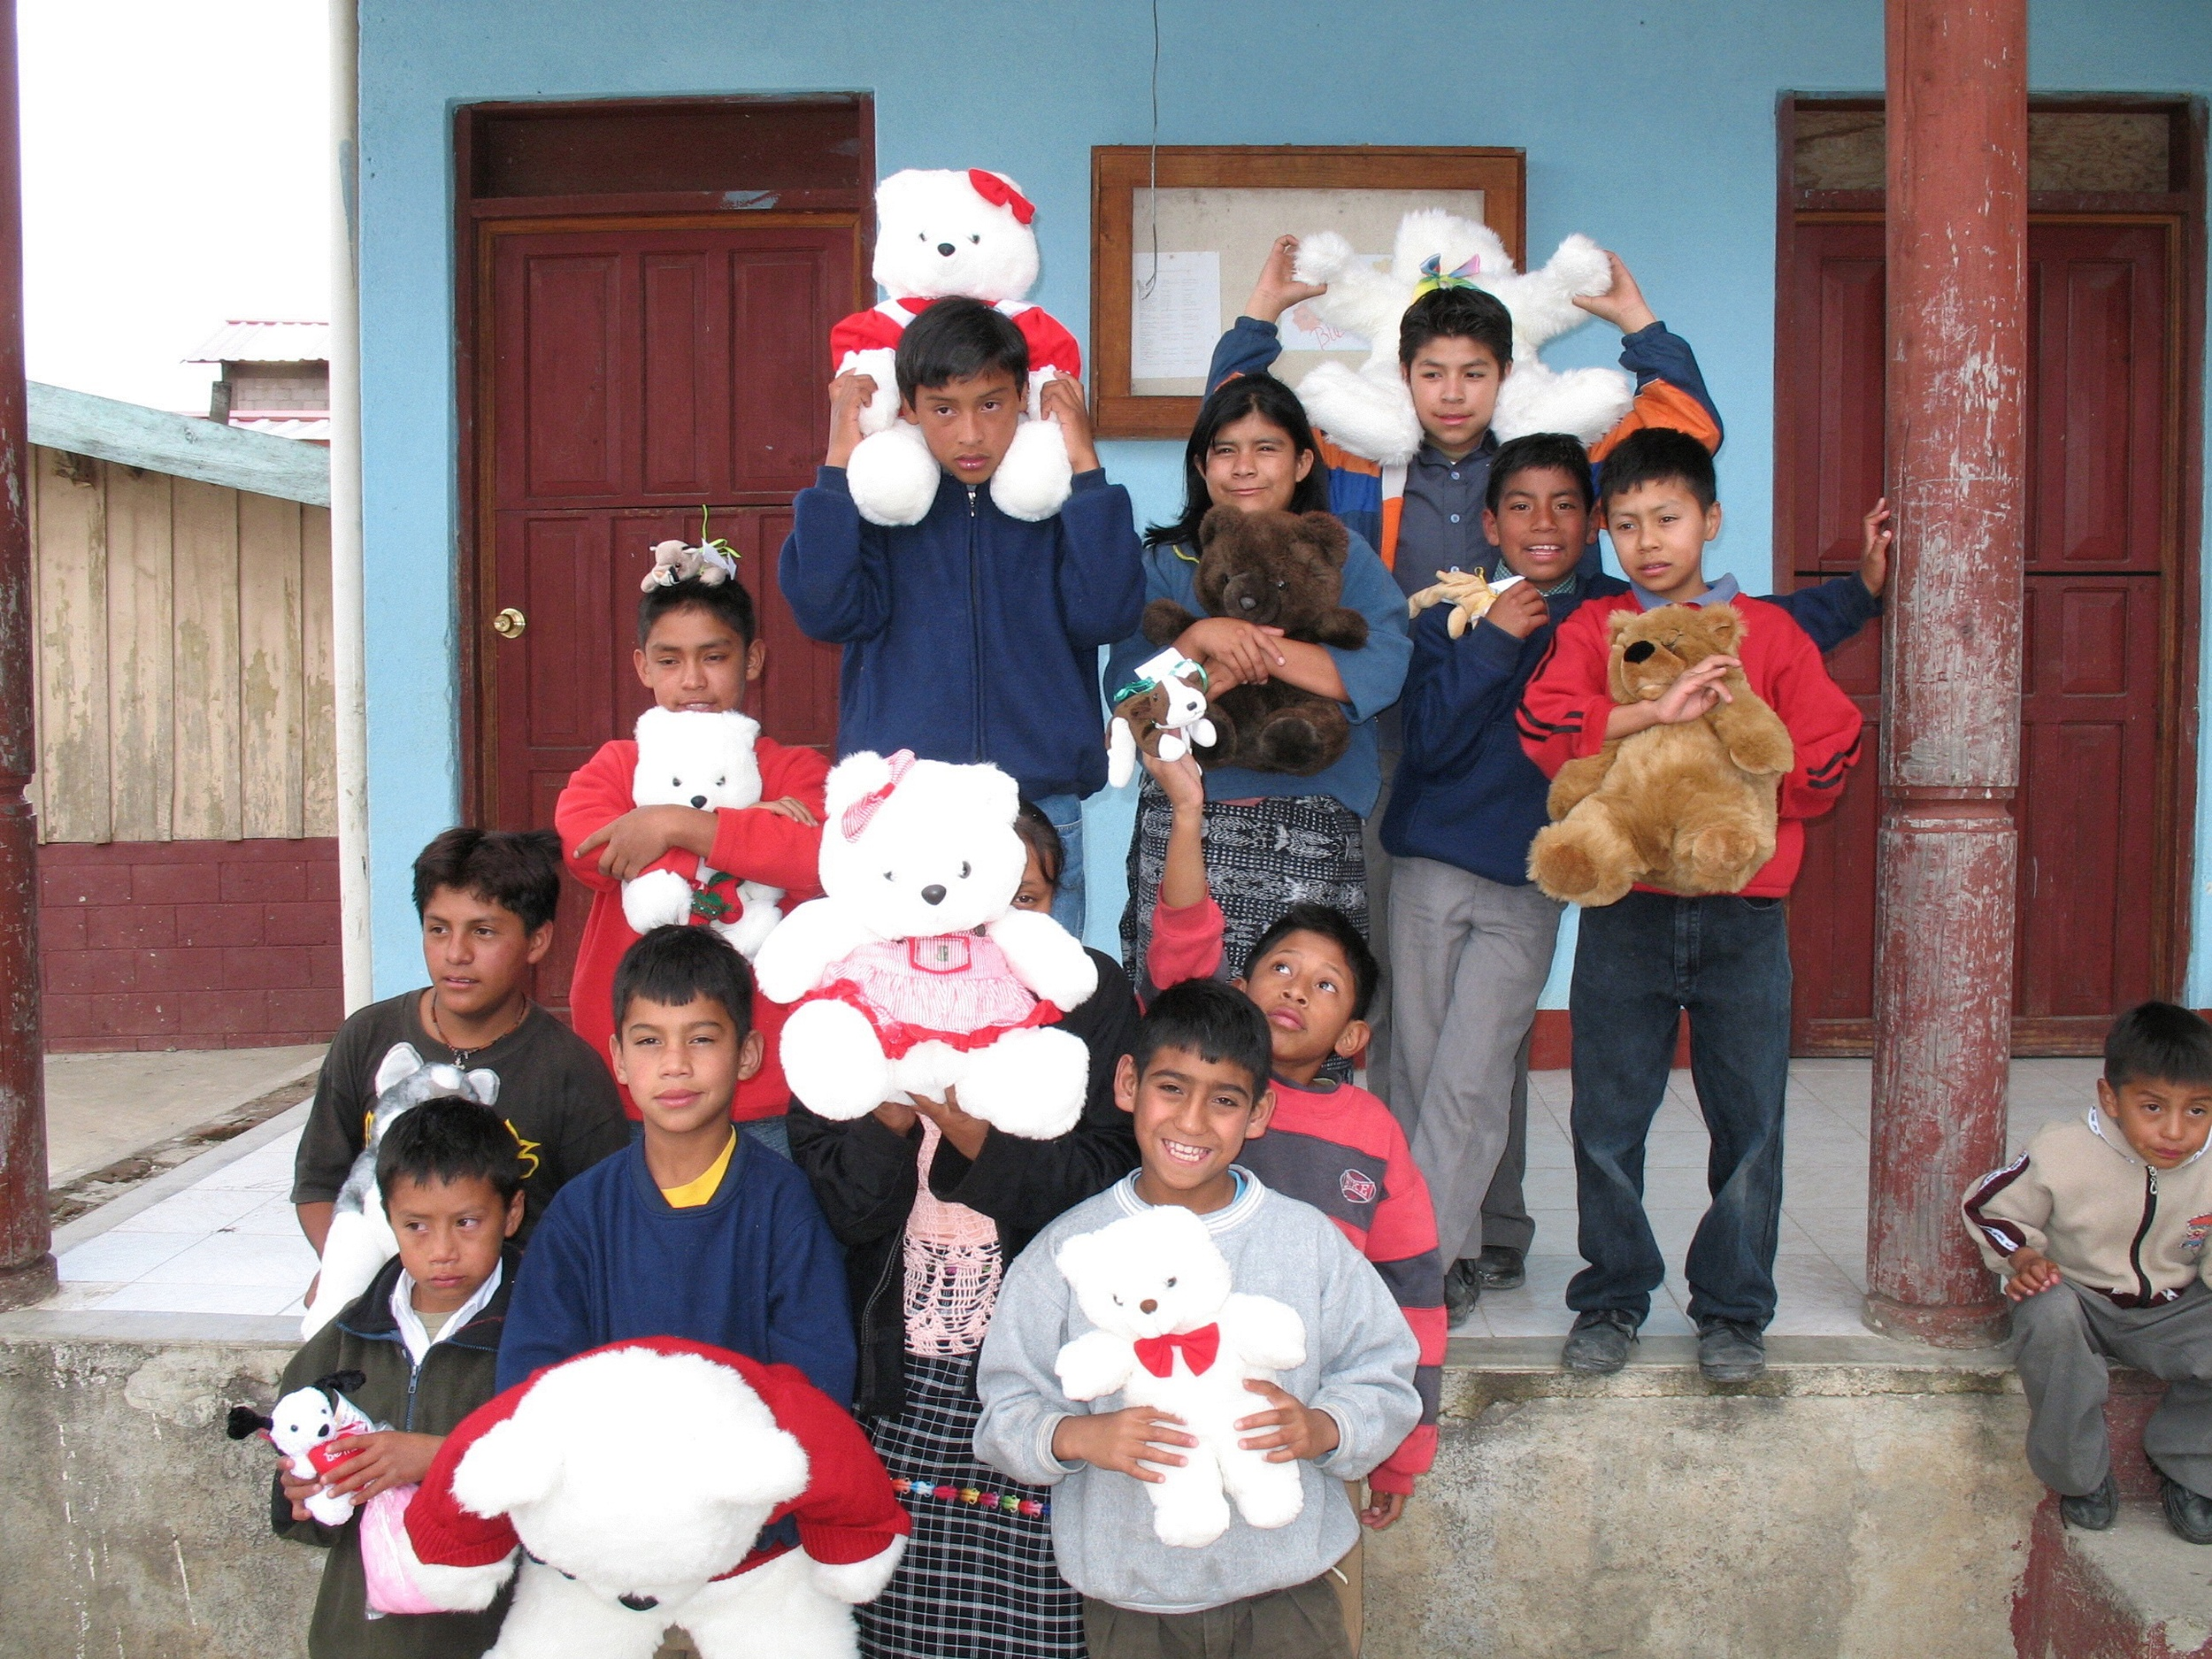 So many children around the world have no toys or stuff animals - these children are holding stuffed animals that RWF delivered to their orphanage.